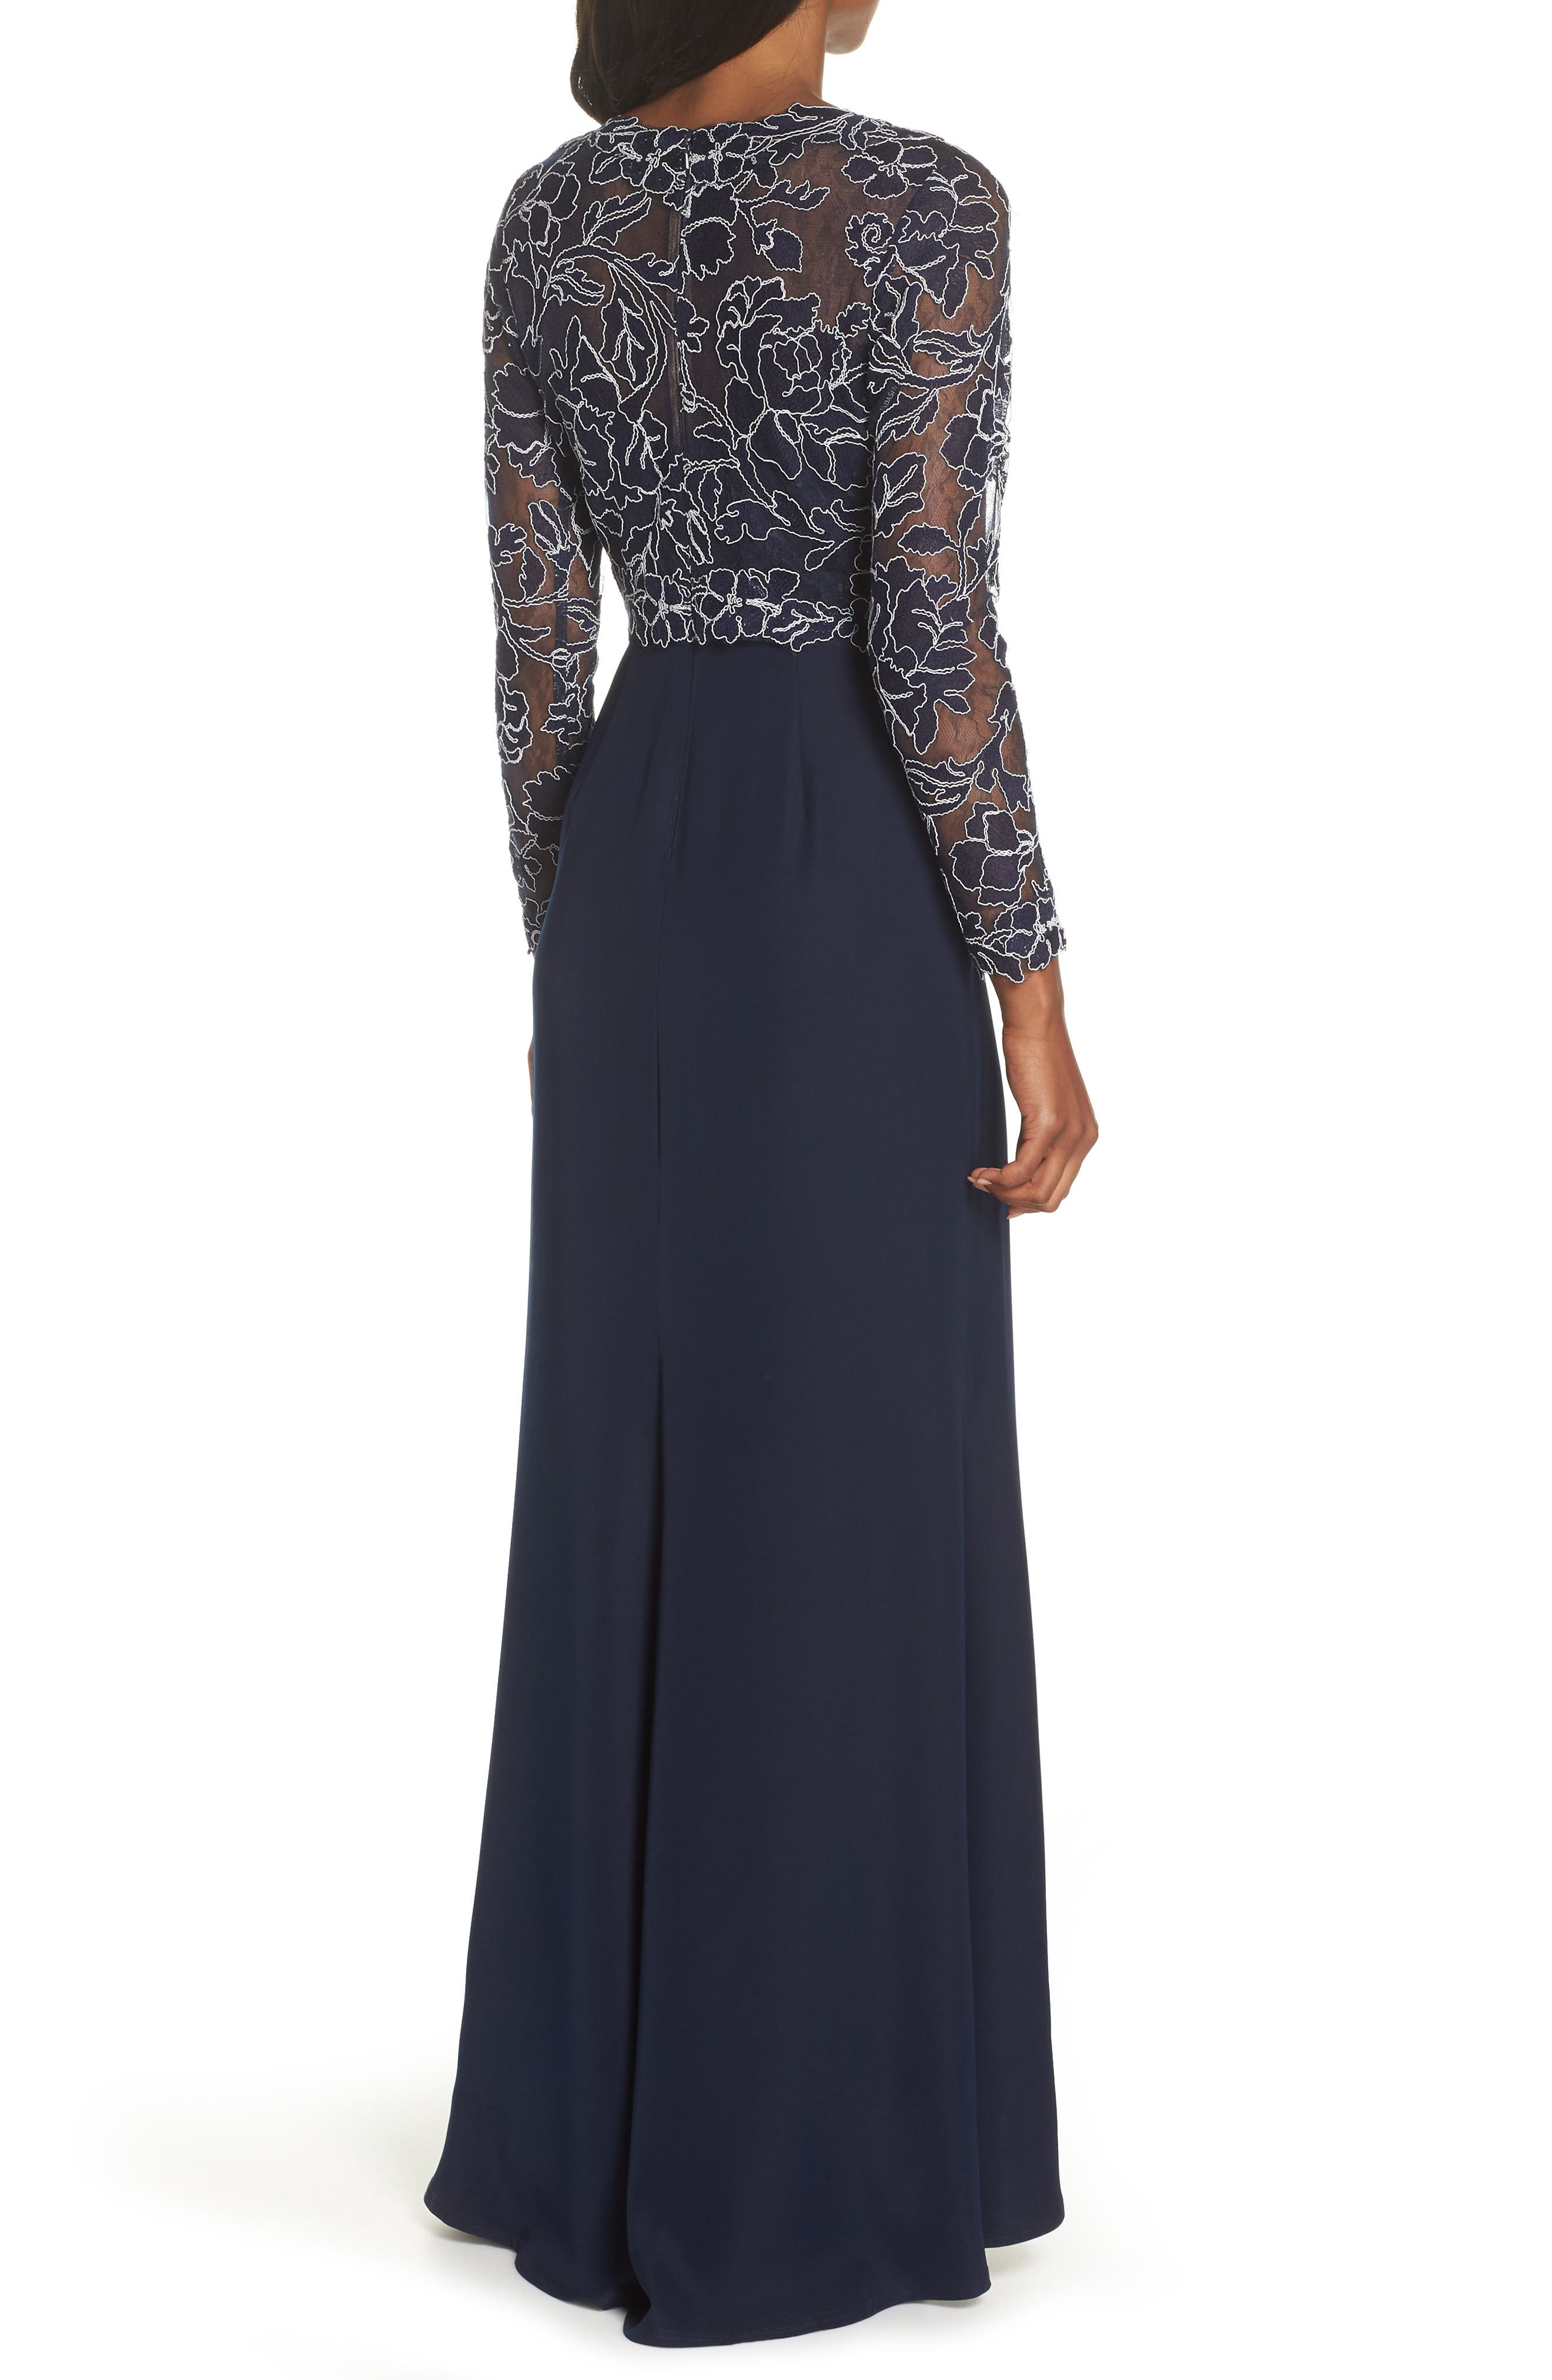 TADASHI SHOJI, Crepe & Embroidered Lace Gown, Alternate thumbnail 2, color, NAVY/ IVORY